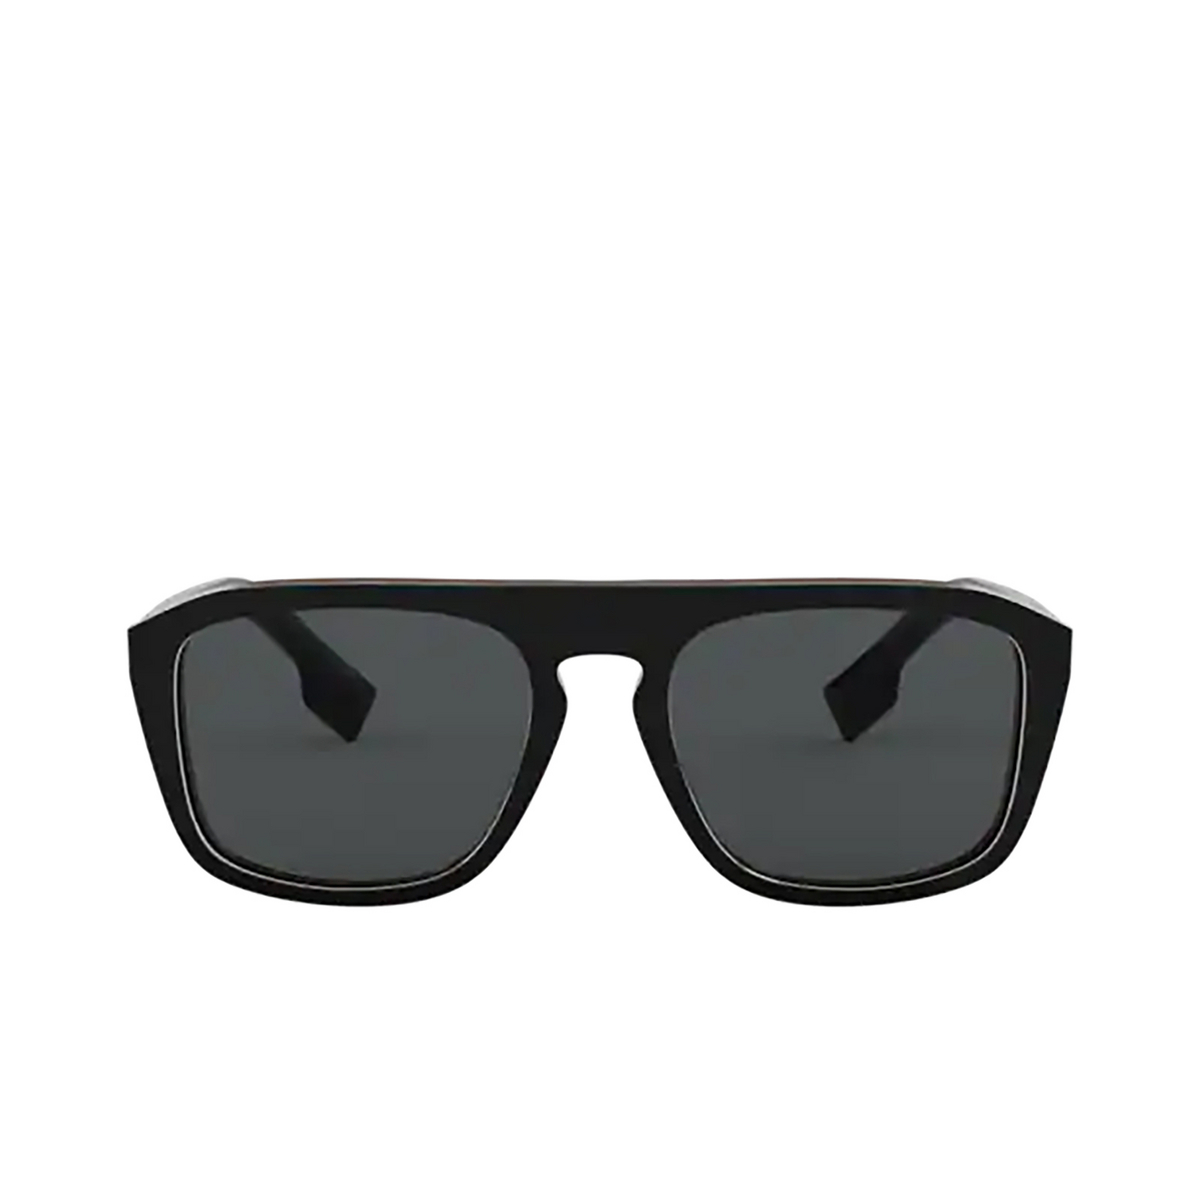 Burberry® Square Sunglasses: BE4286 color Check Multilayer Black 379881 - front view.